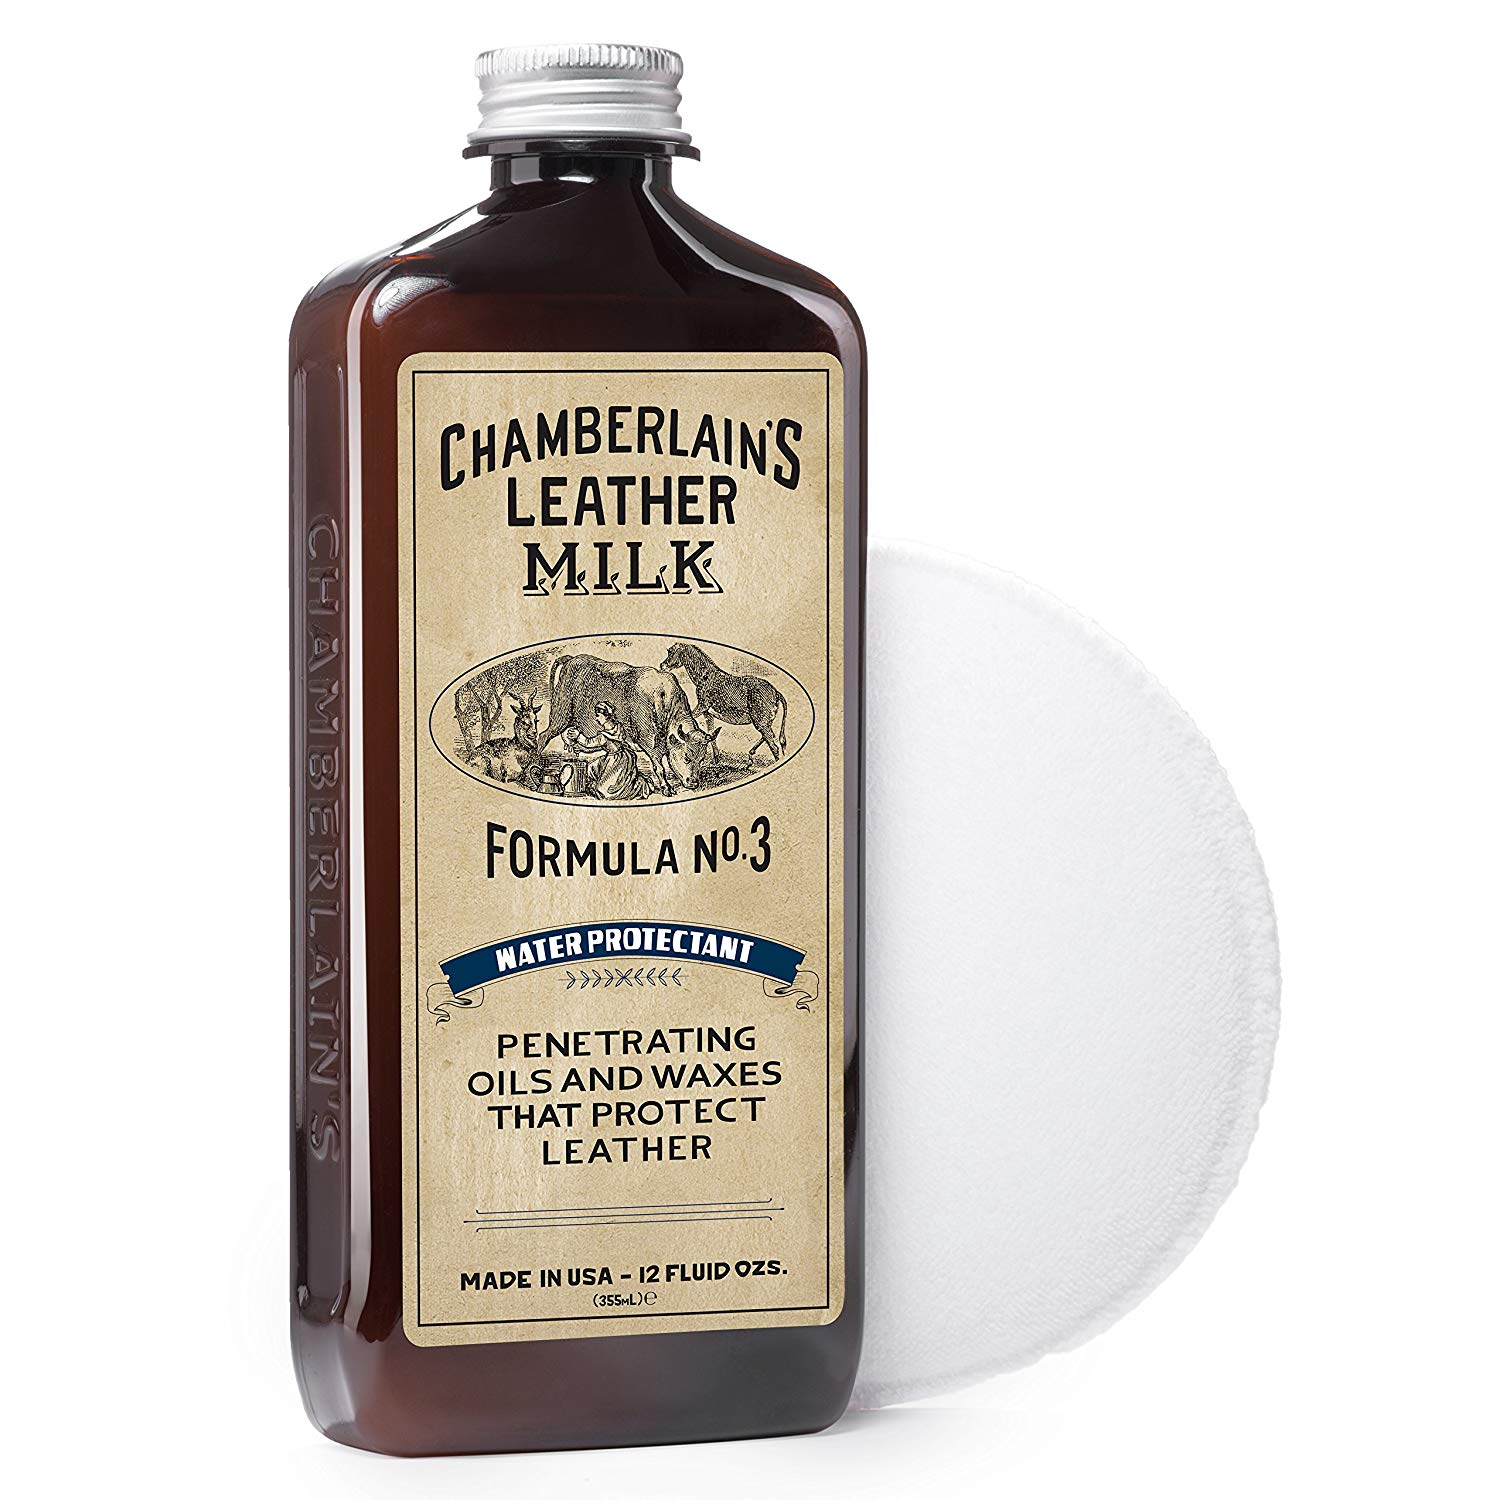 how to restore leather furniture chamberlain's milk water protectant formula number 3